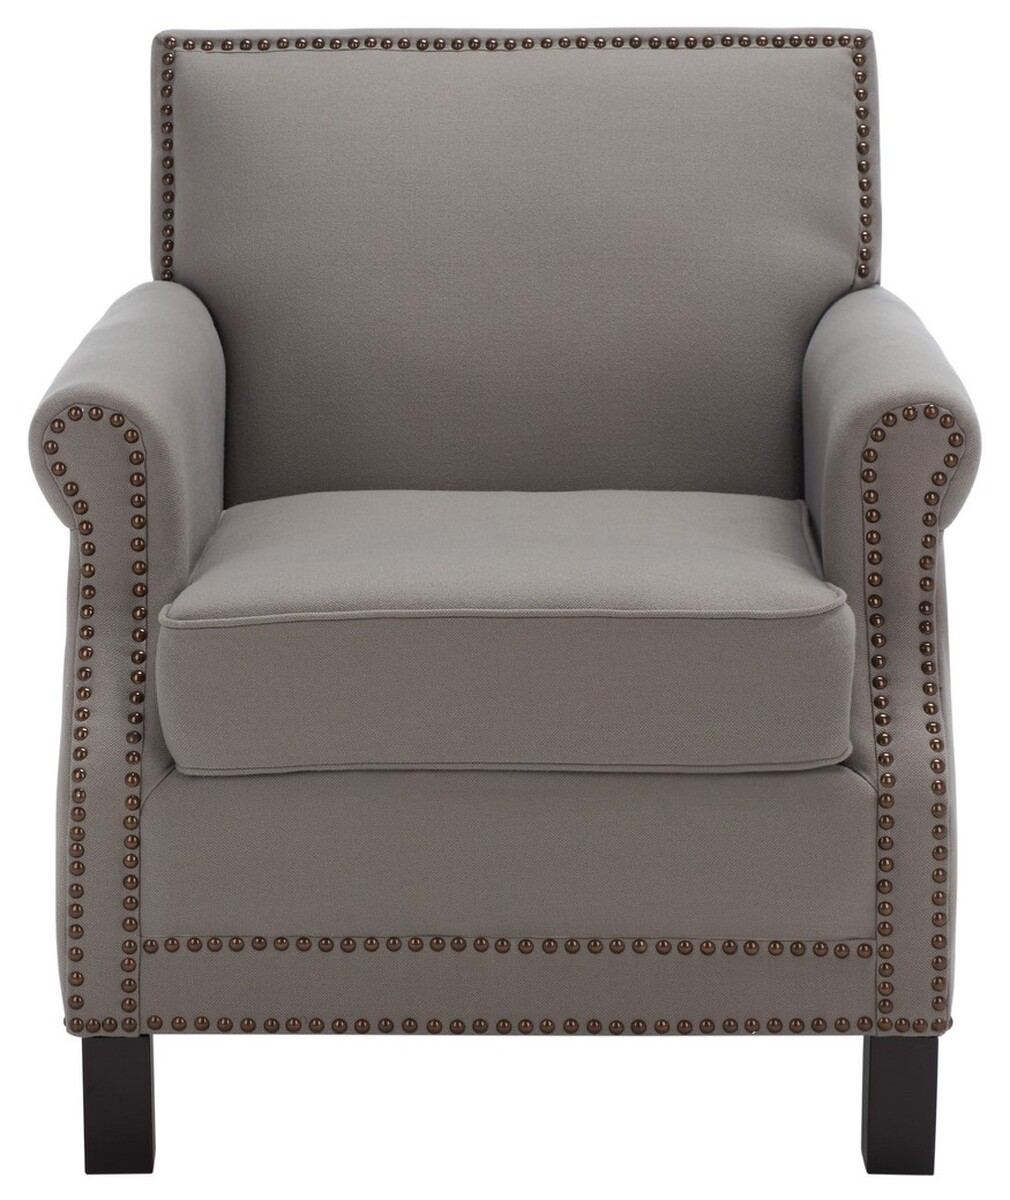 MCR4572A Accent Chairs Furniture by Safavieh